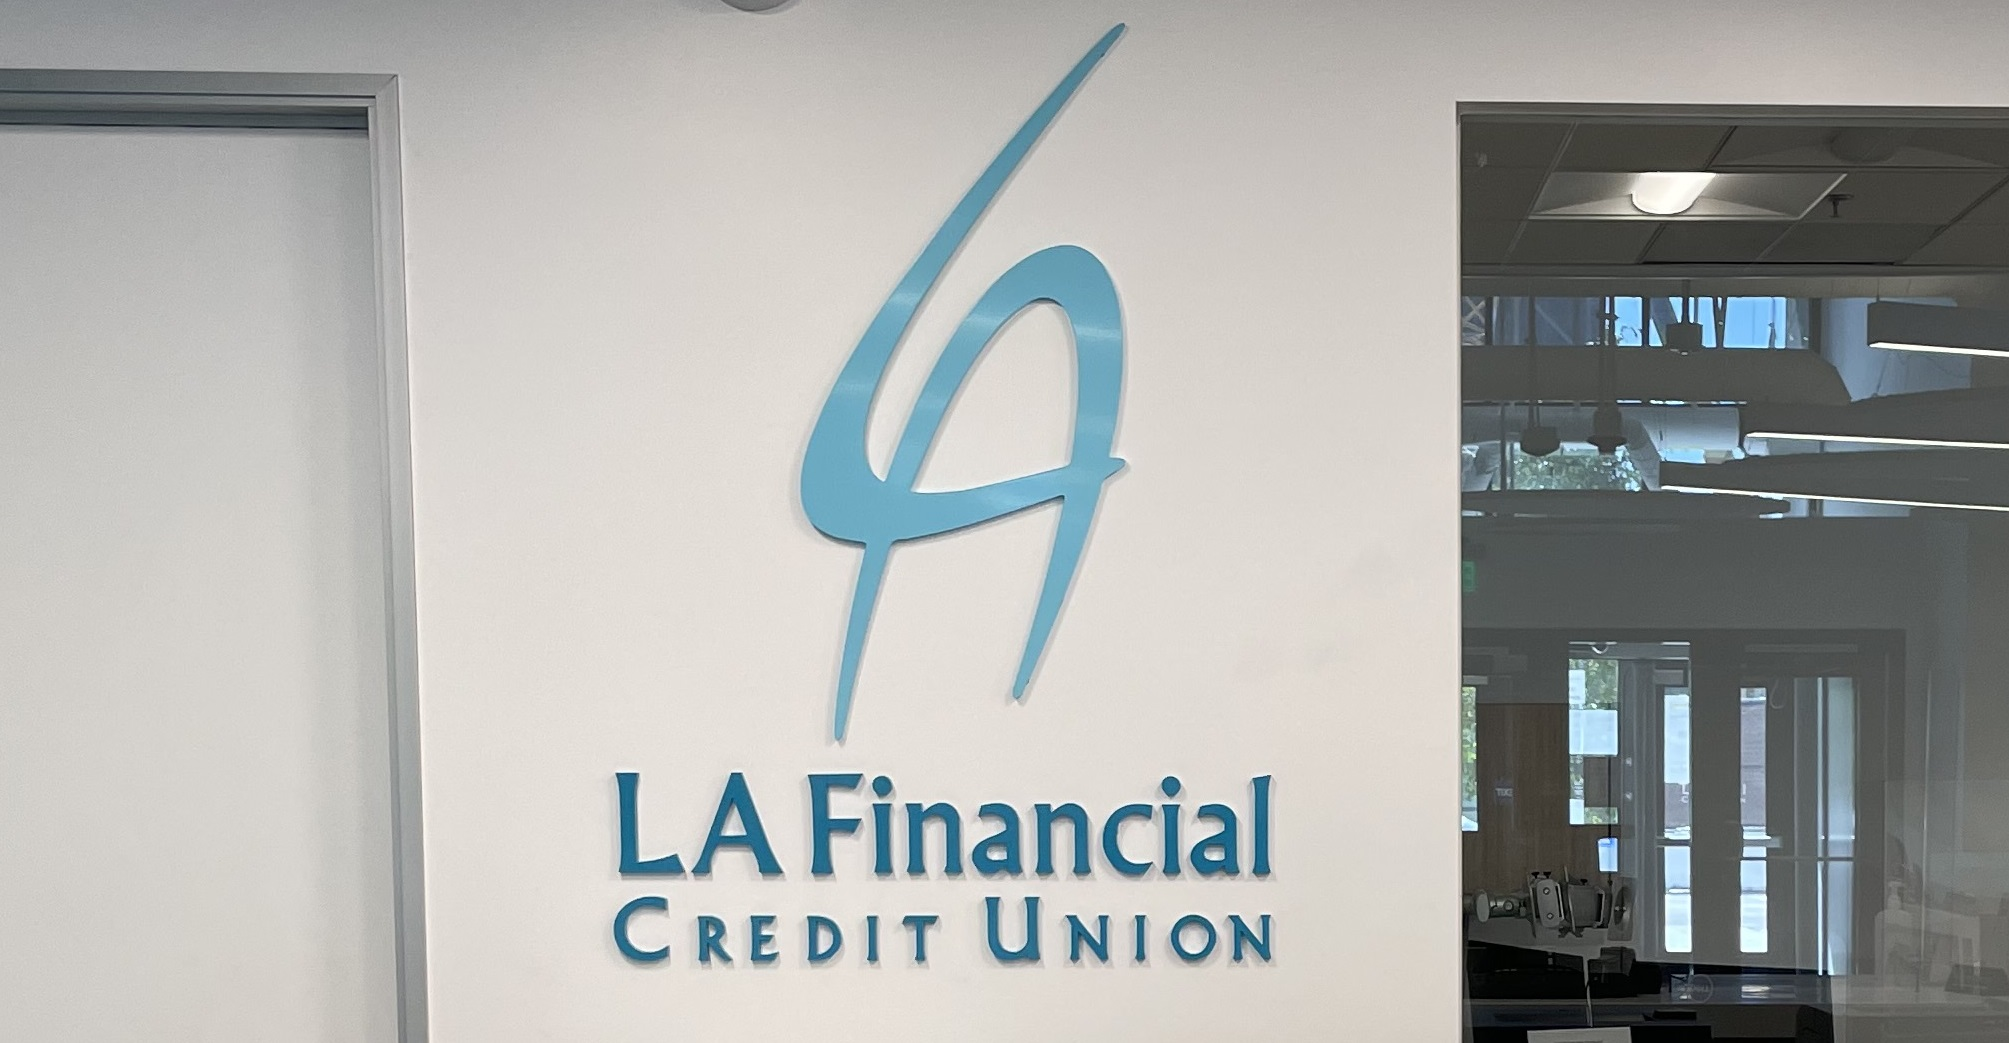 This is the lobby sign we made for LA Financial's office. In a bustling workplace like this, it helps to have a centerpiece to signify the company's brand.